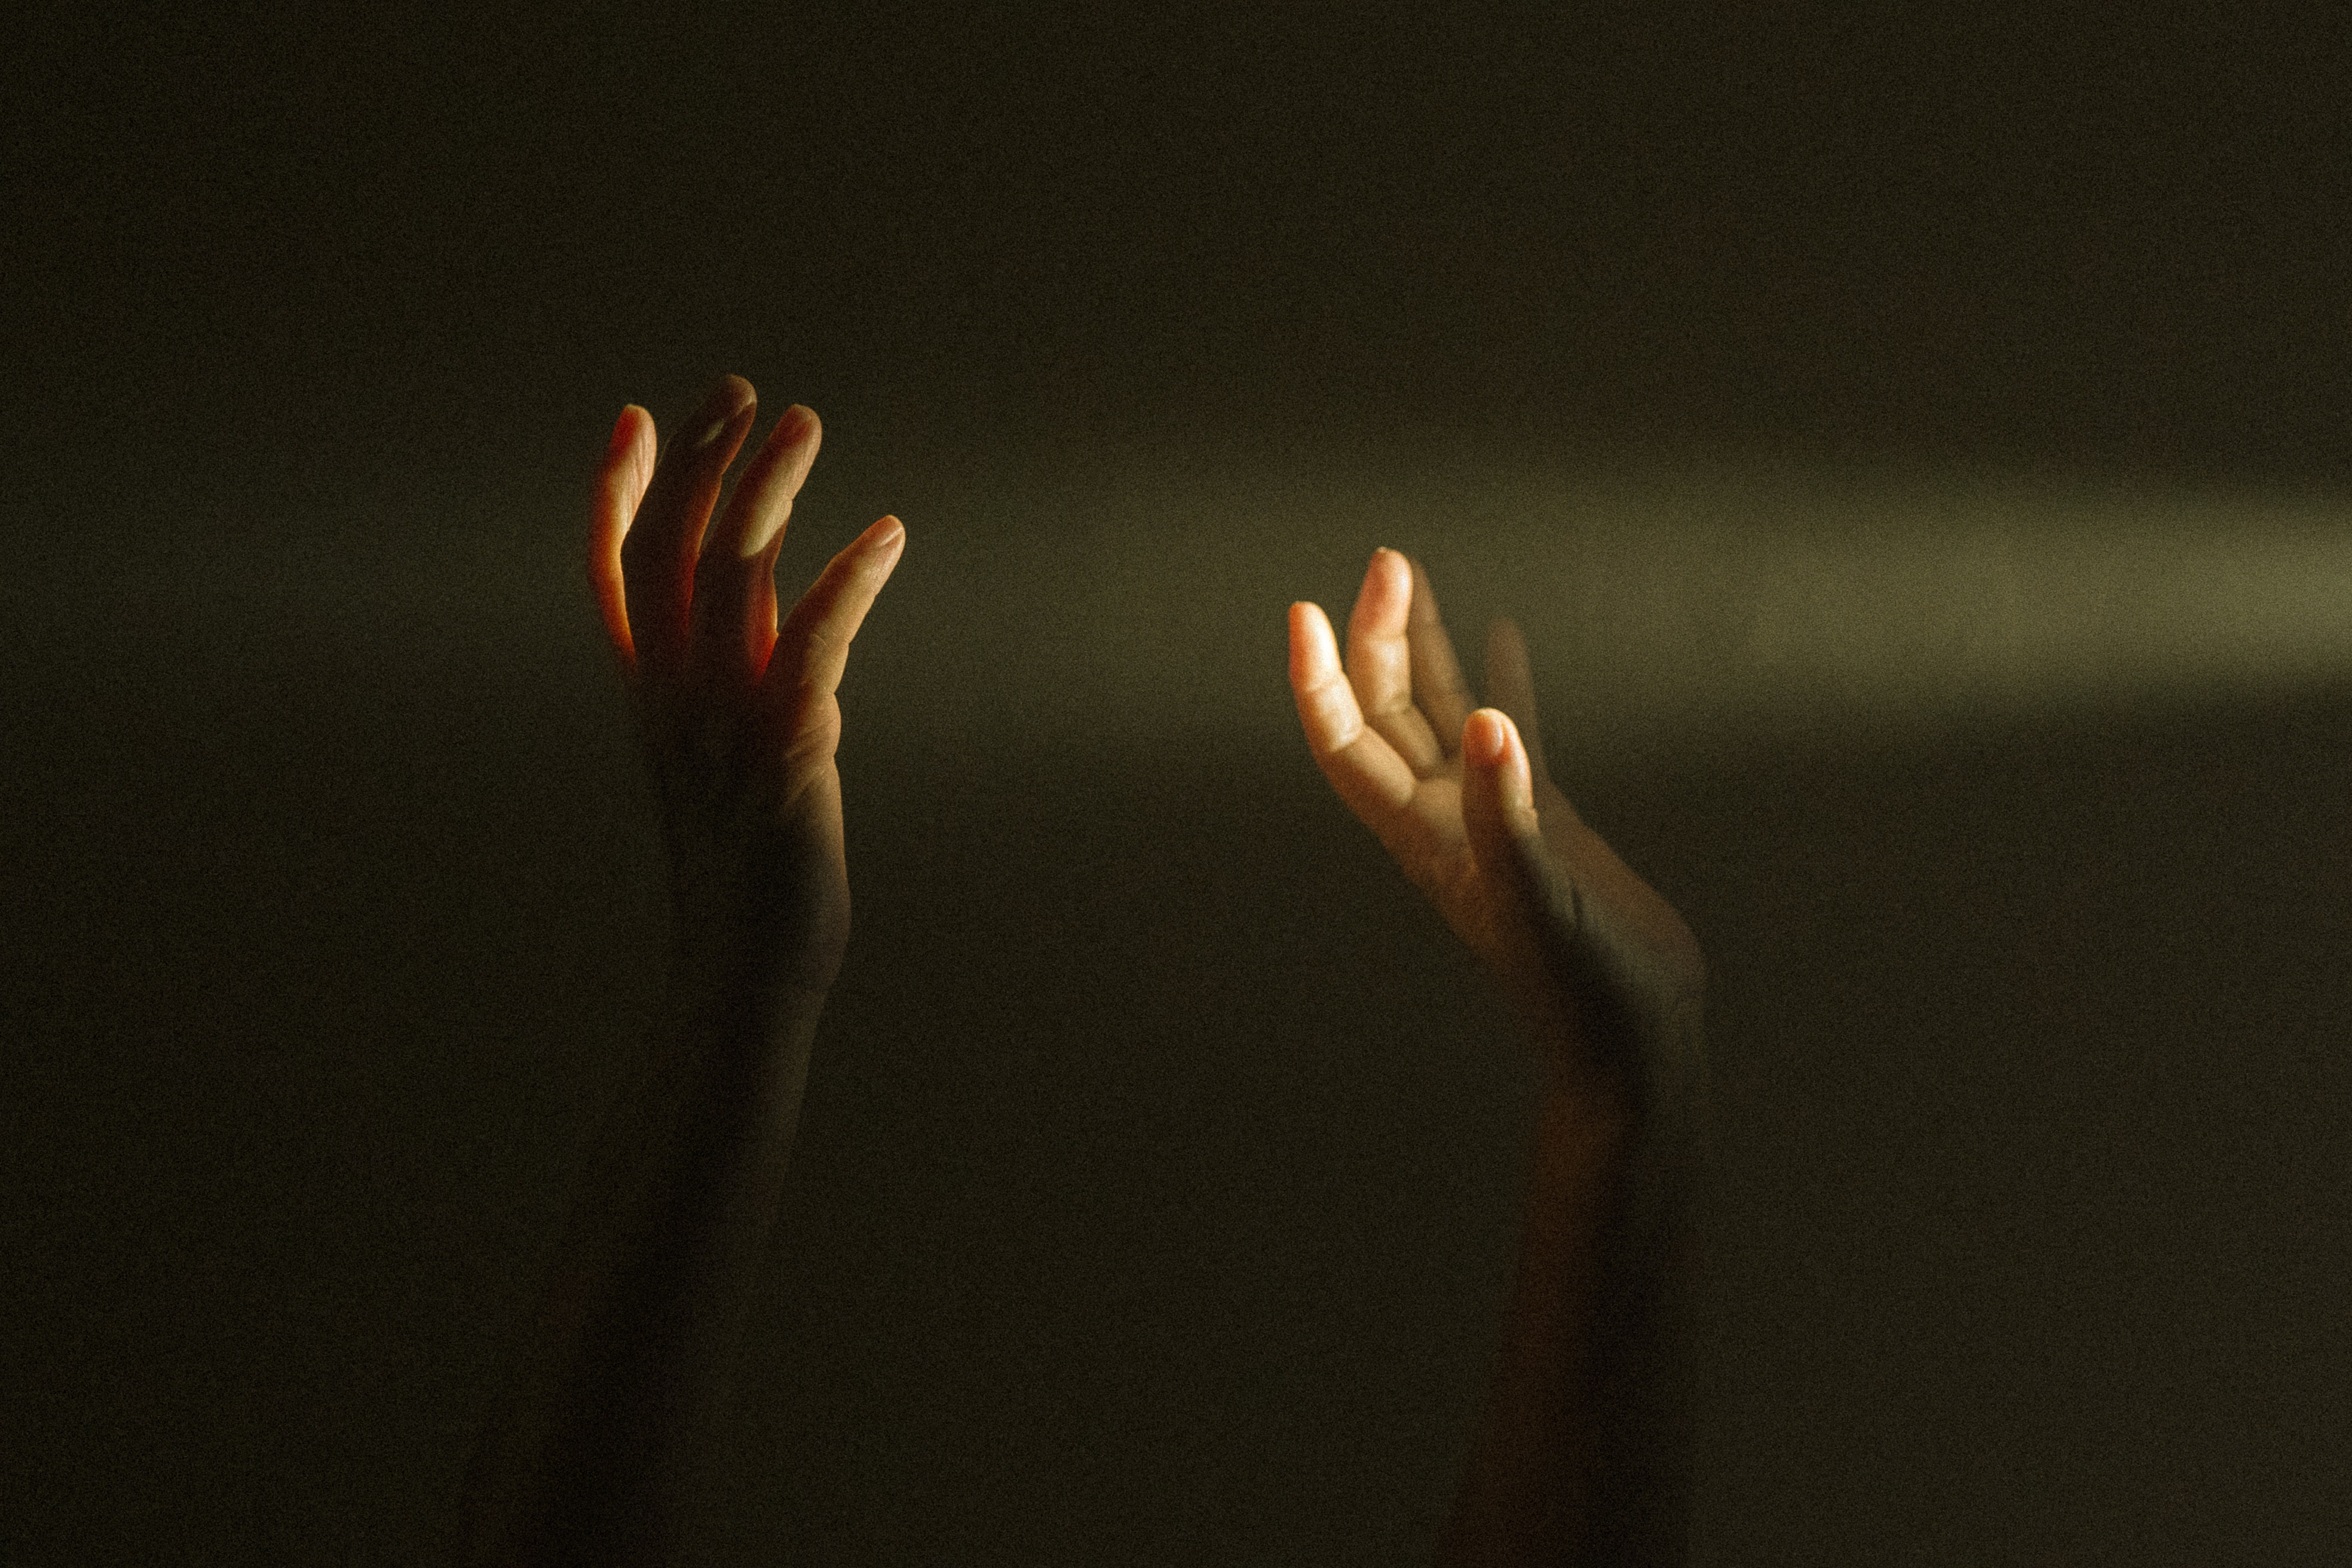 person with hands raised personifying mental health